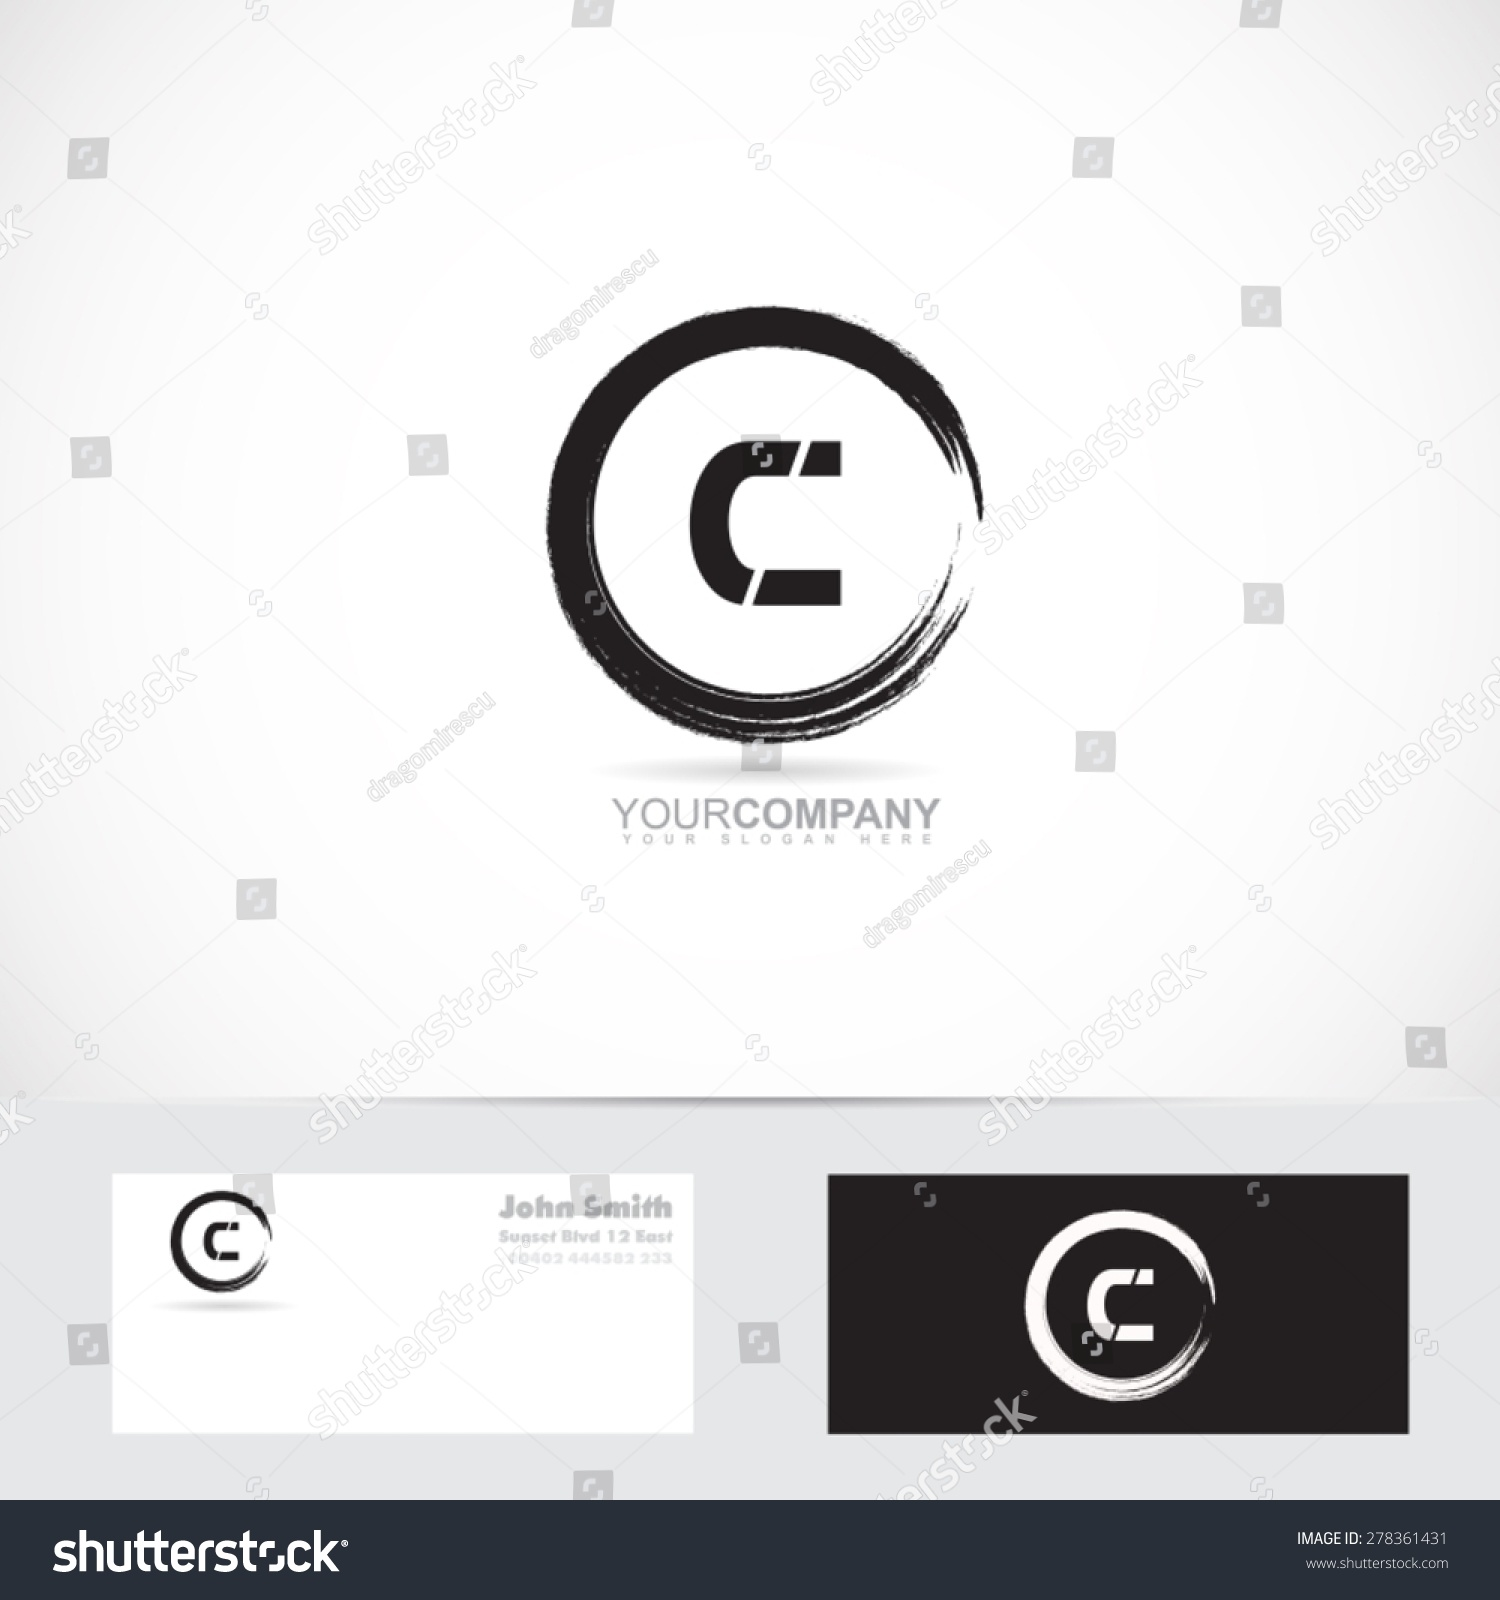 Famous 10 Envelope Template Indesign Big 1st Birthday Invitation Template Rectangular 2 Page Resume Header 2013 Resume Writing Trends Youthful 2014 Planner Template White2014 Sample Resume Templates Vector Logo Template Alphabet Letter C Stock Vector 278361431 ..